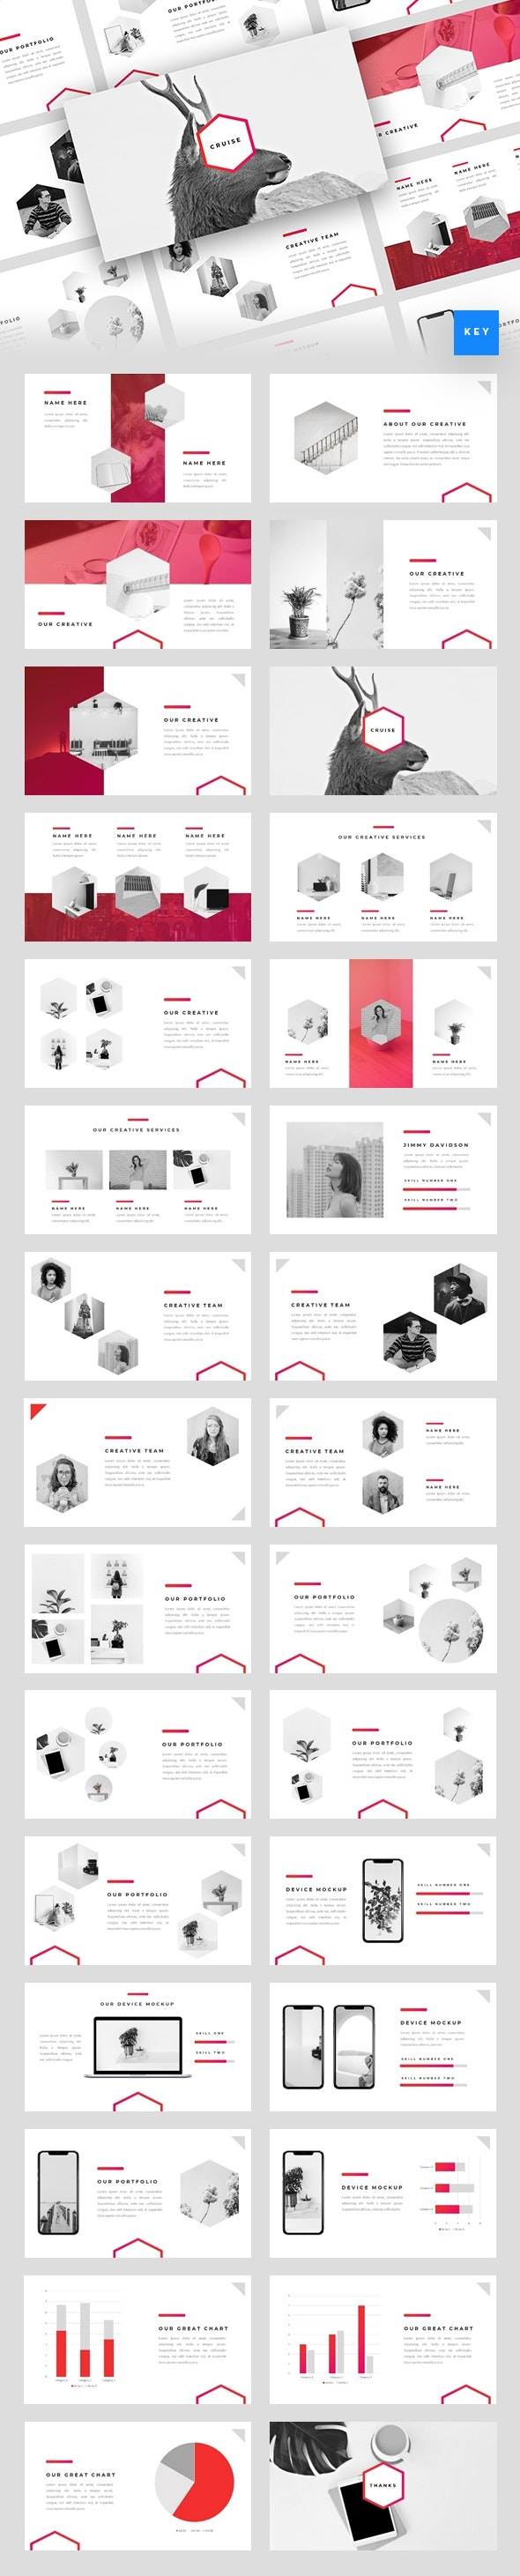 Cruise - Creative Keynote Template - Creative Keynote Templates